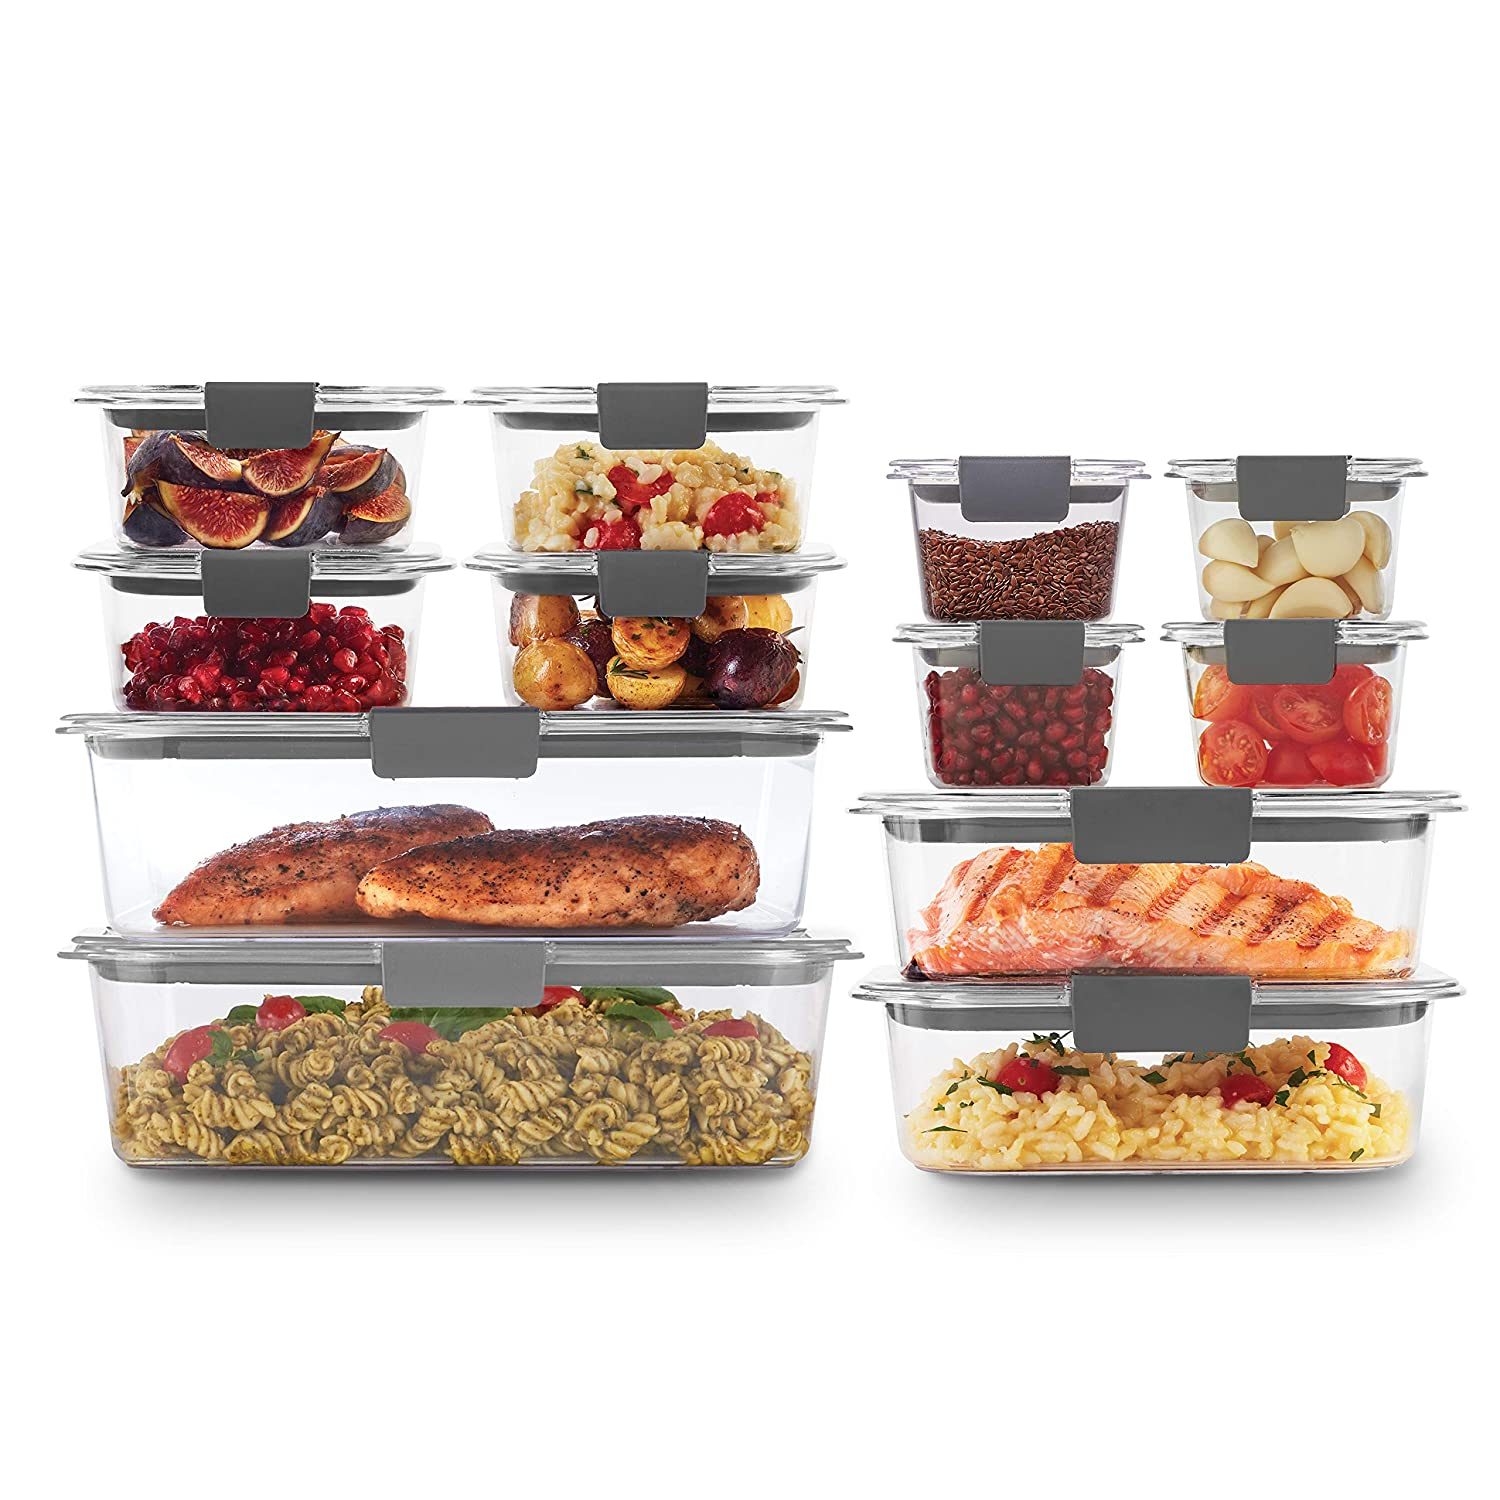 Rubbermaid 2108390 Brilliance Storage 24-Piece Plastic Lids | BPA Free, Leak Proof Food Container, Clear